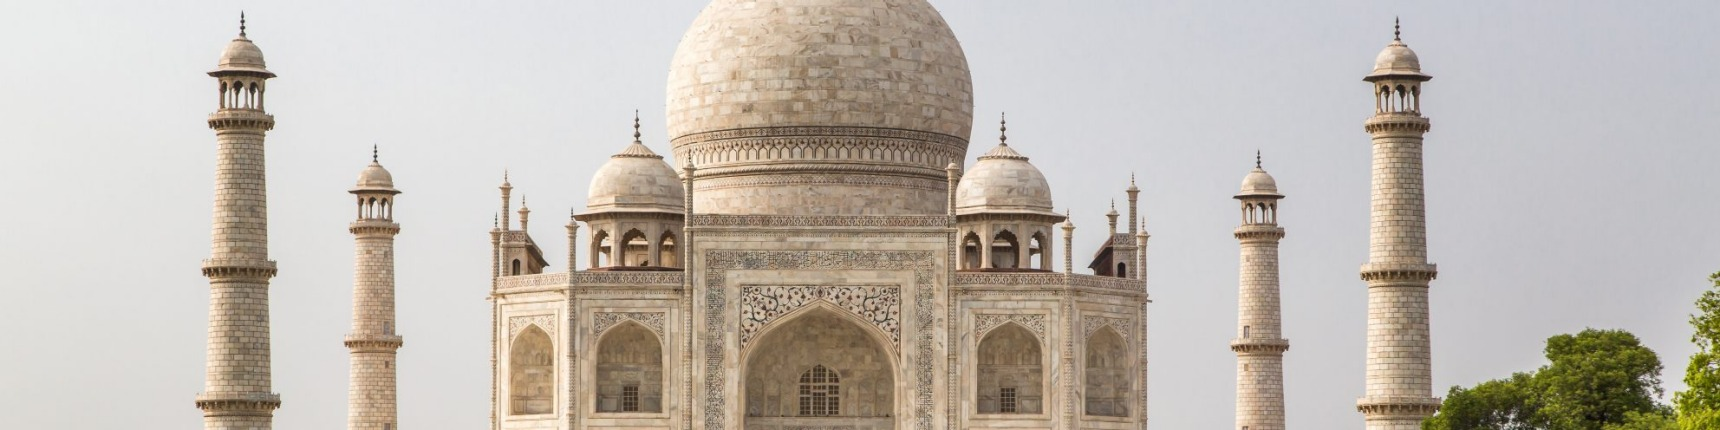 Agra, India, Taj Mahal